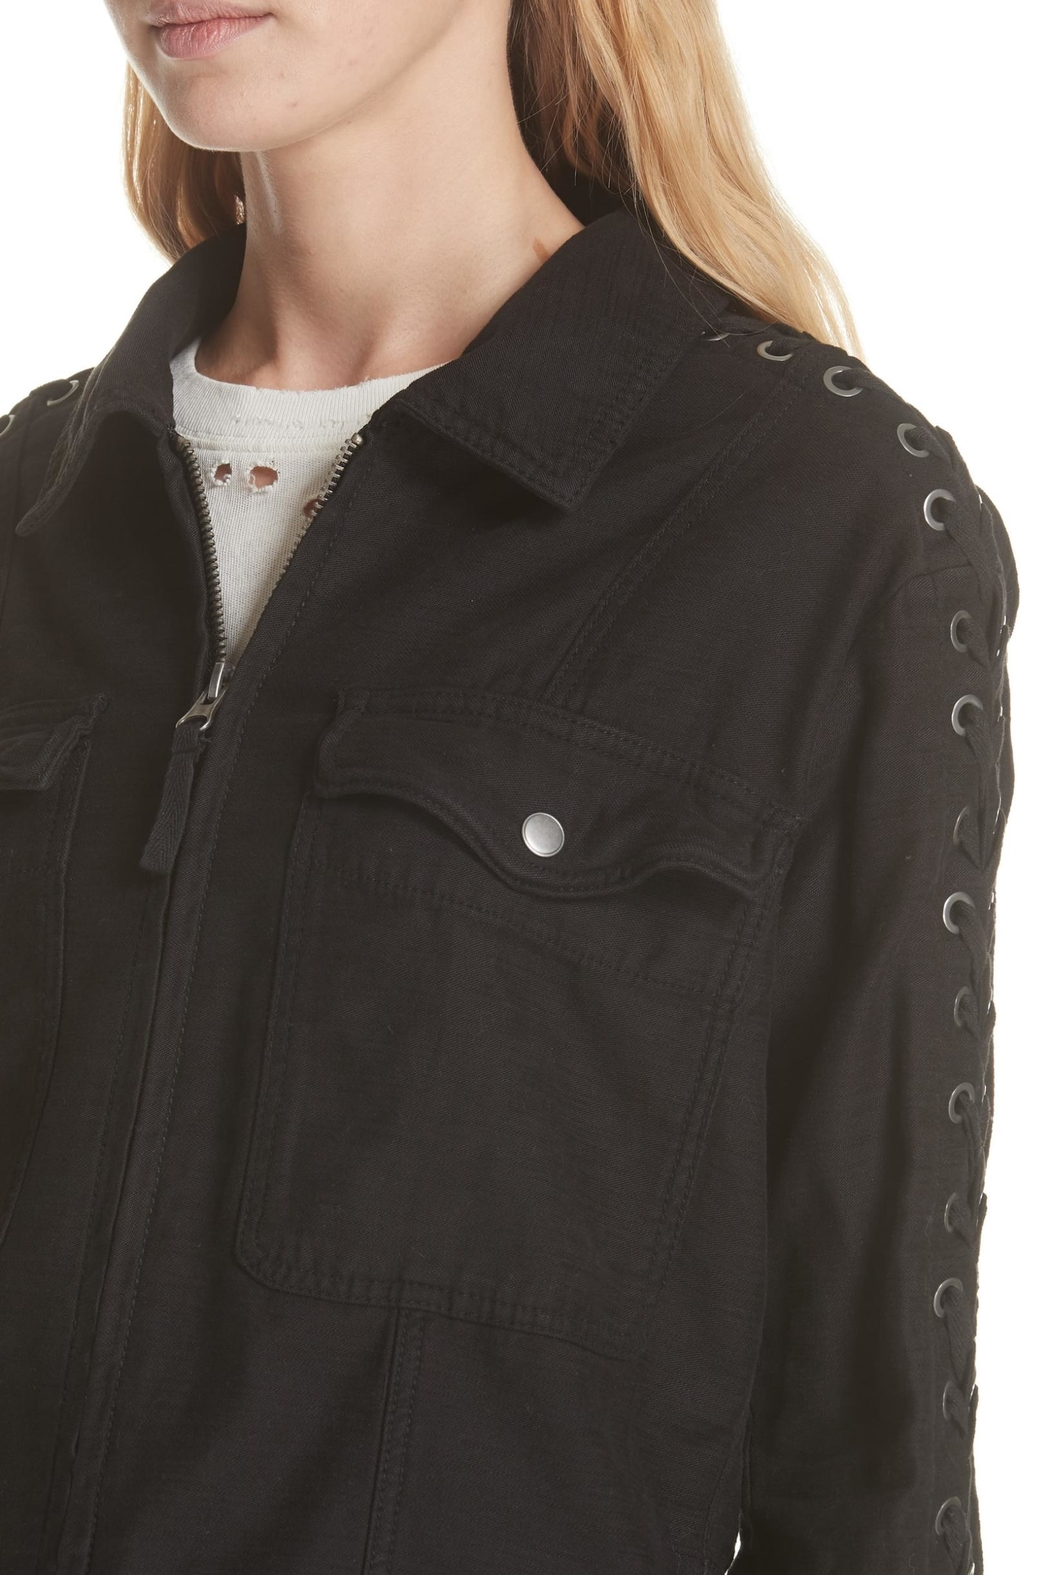 8f23a2c122 Free People Faye Military Jacket from Hudson Valley by Bfree ...